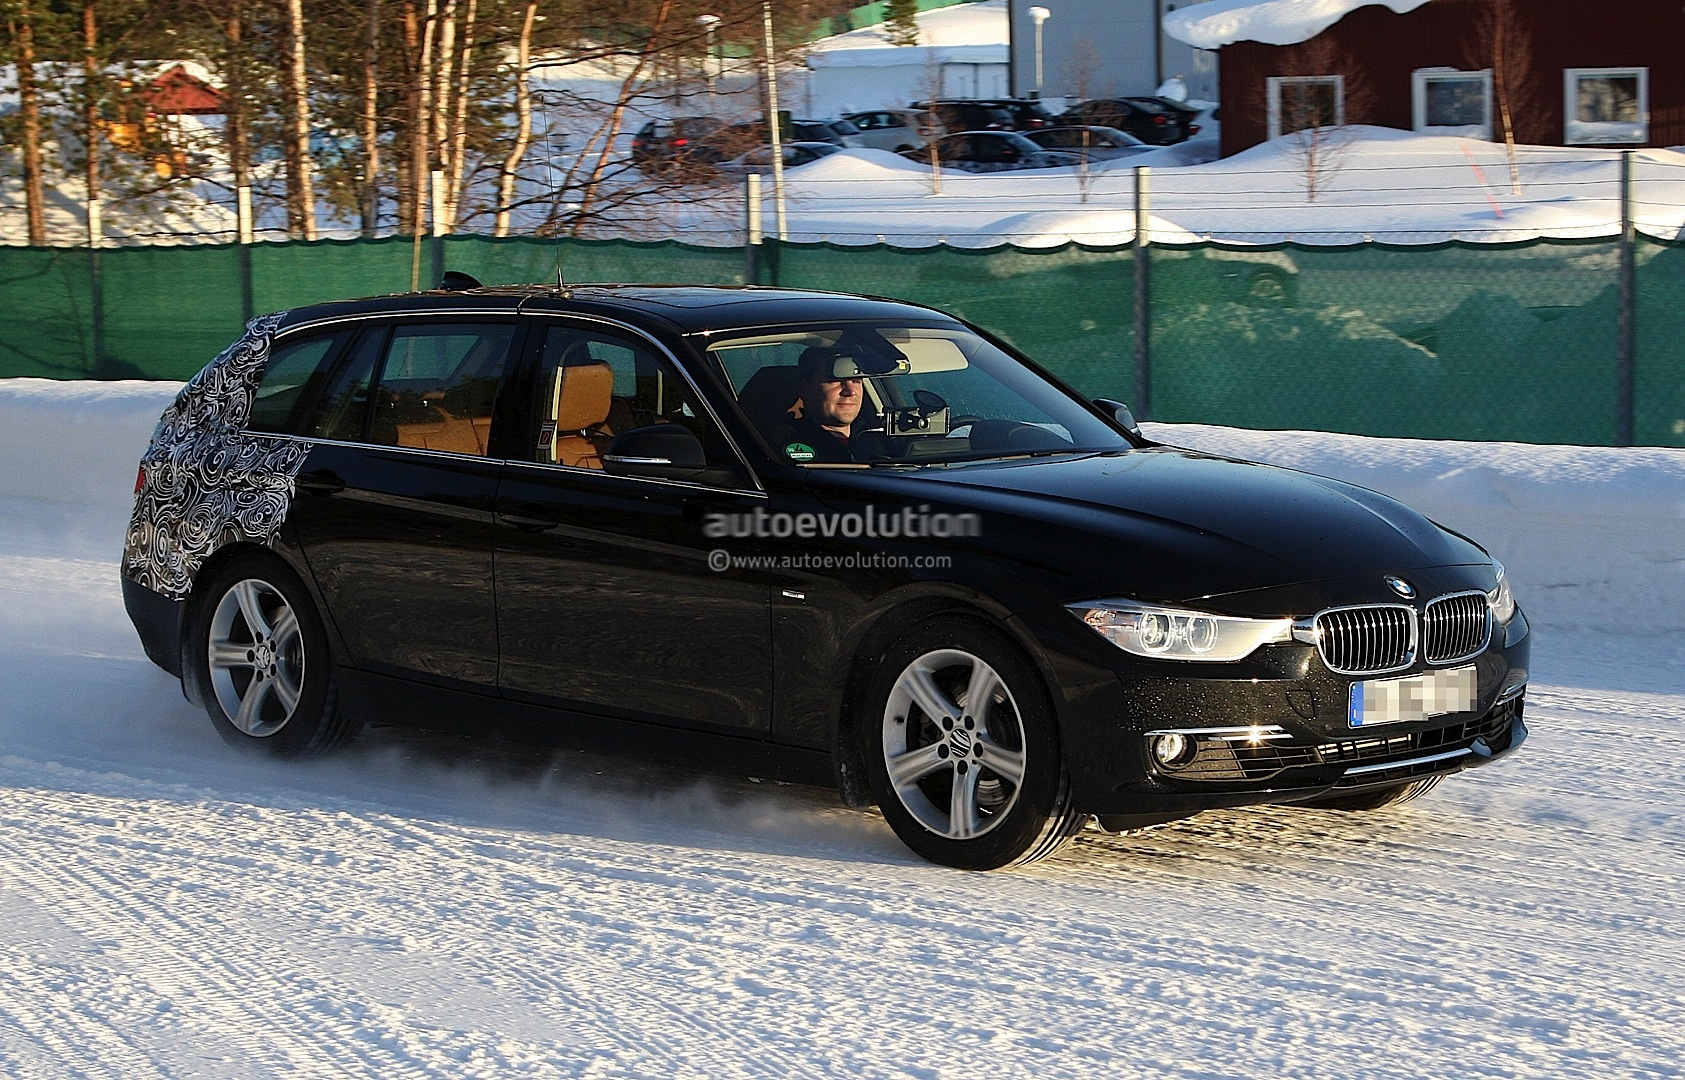 spyshots 2013 f31 bmw 3 series touring almost revealed autoevolution. Black Bedroom Furniture Sets. Home Design Ideas